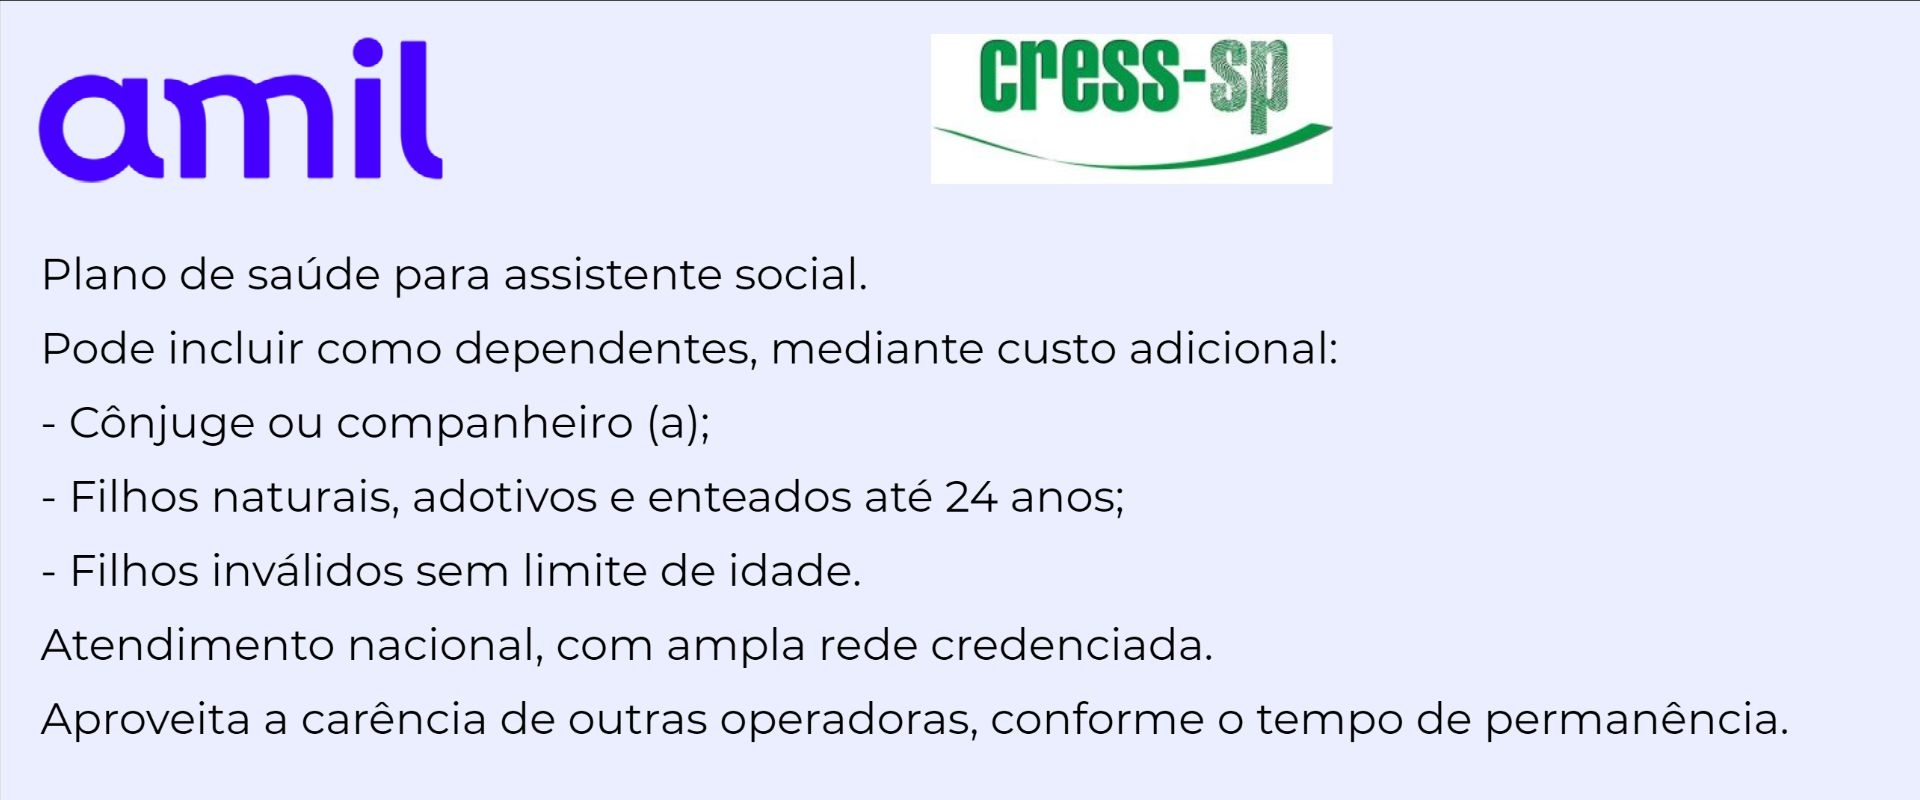 Amil CRESS-SP